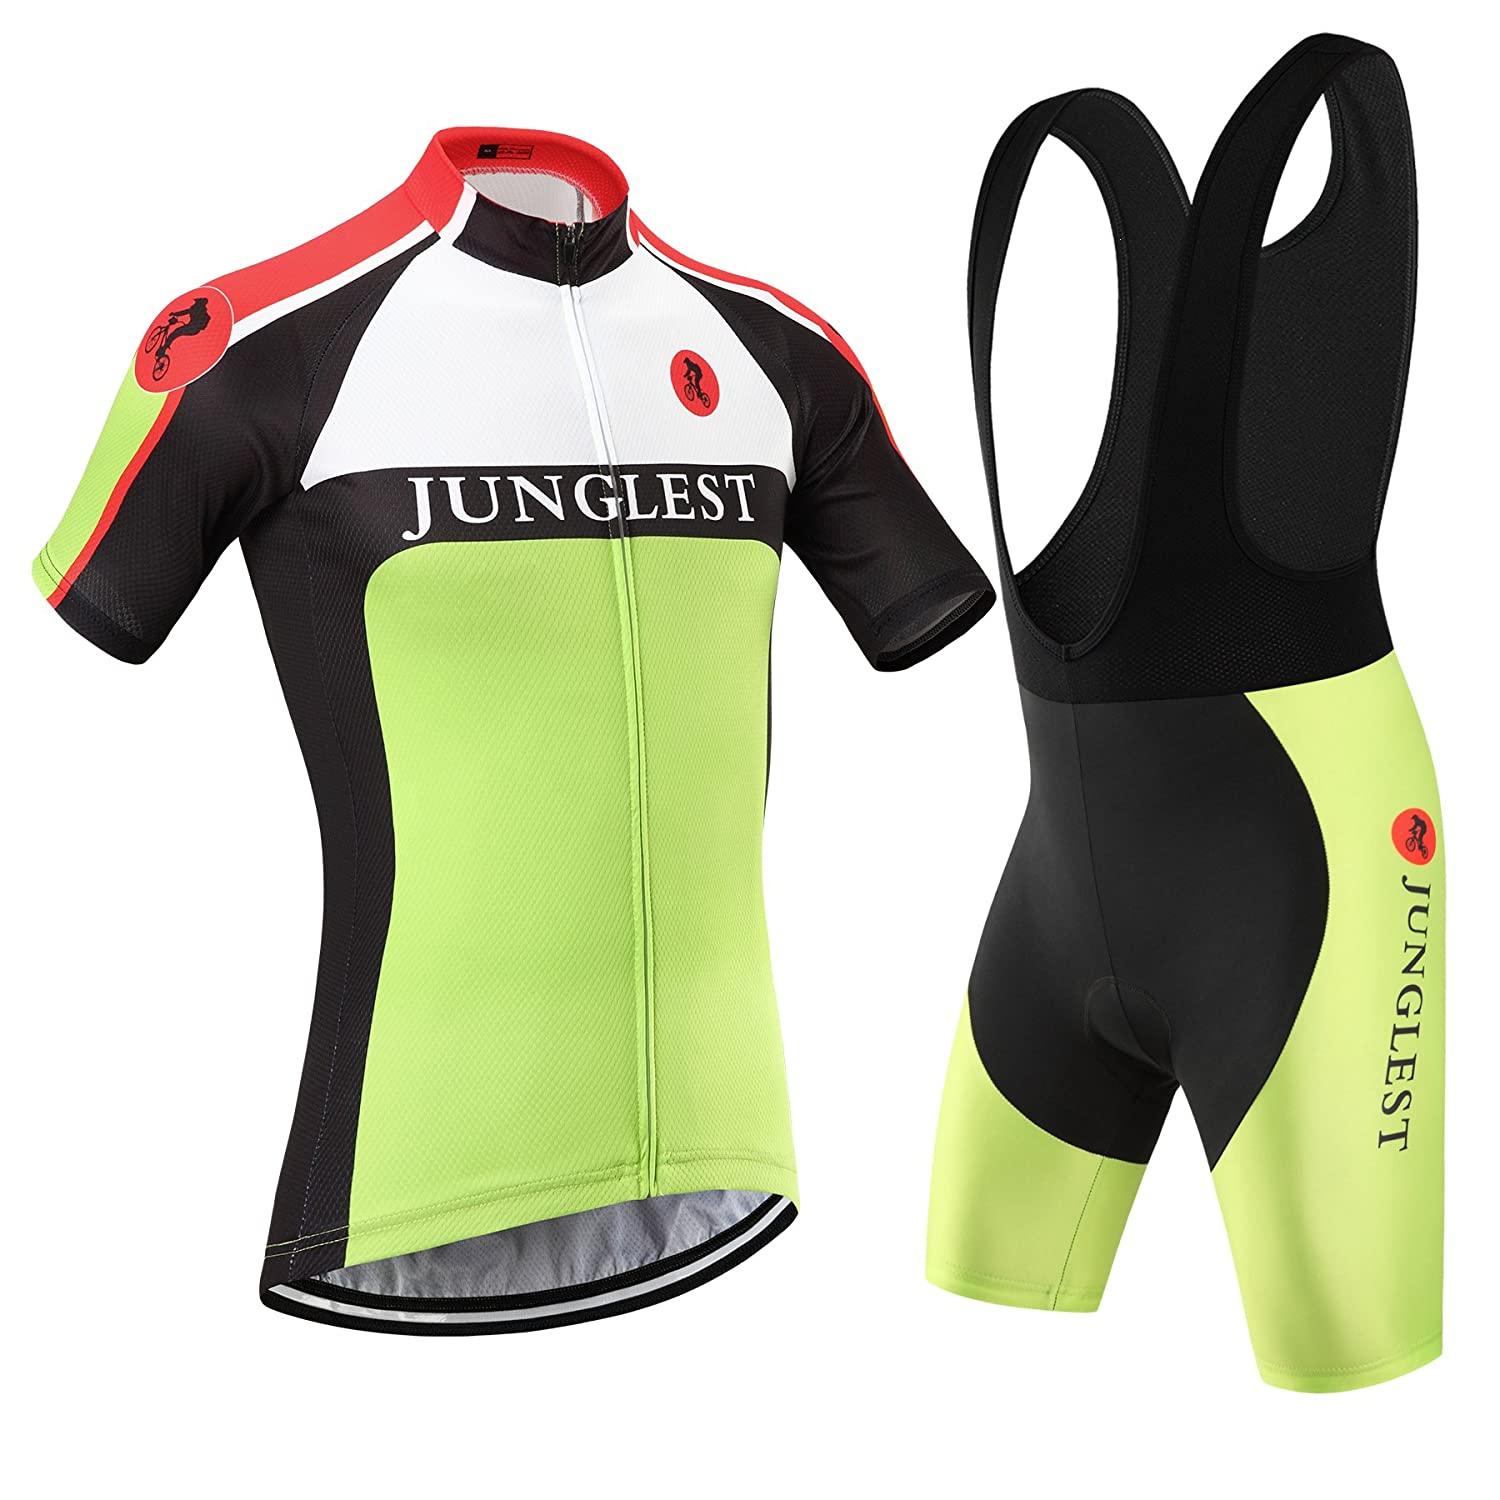 Cycling jersey Set, Maillot de Cyclisme Wen Homme Short sleeve Manches Courtes(S~5XL,option:bib Cuissard,3D pad Coussin) N16 jngles